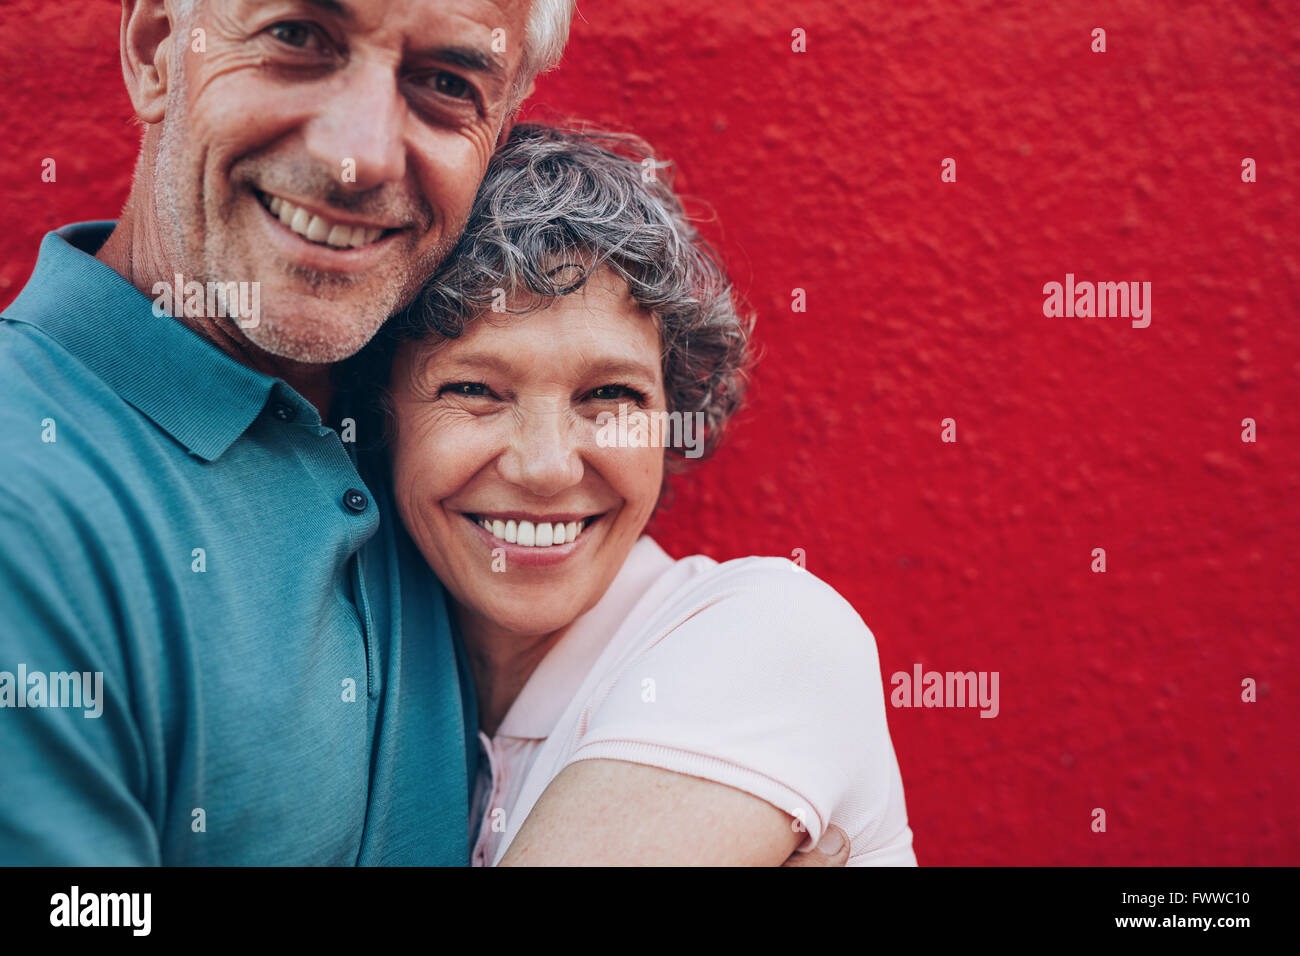 Portrait of cheerful middle aged couple embracing each other against red background. Mature man and woman together - Stock Image